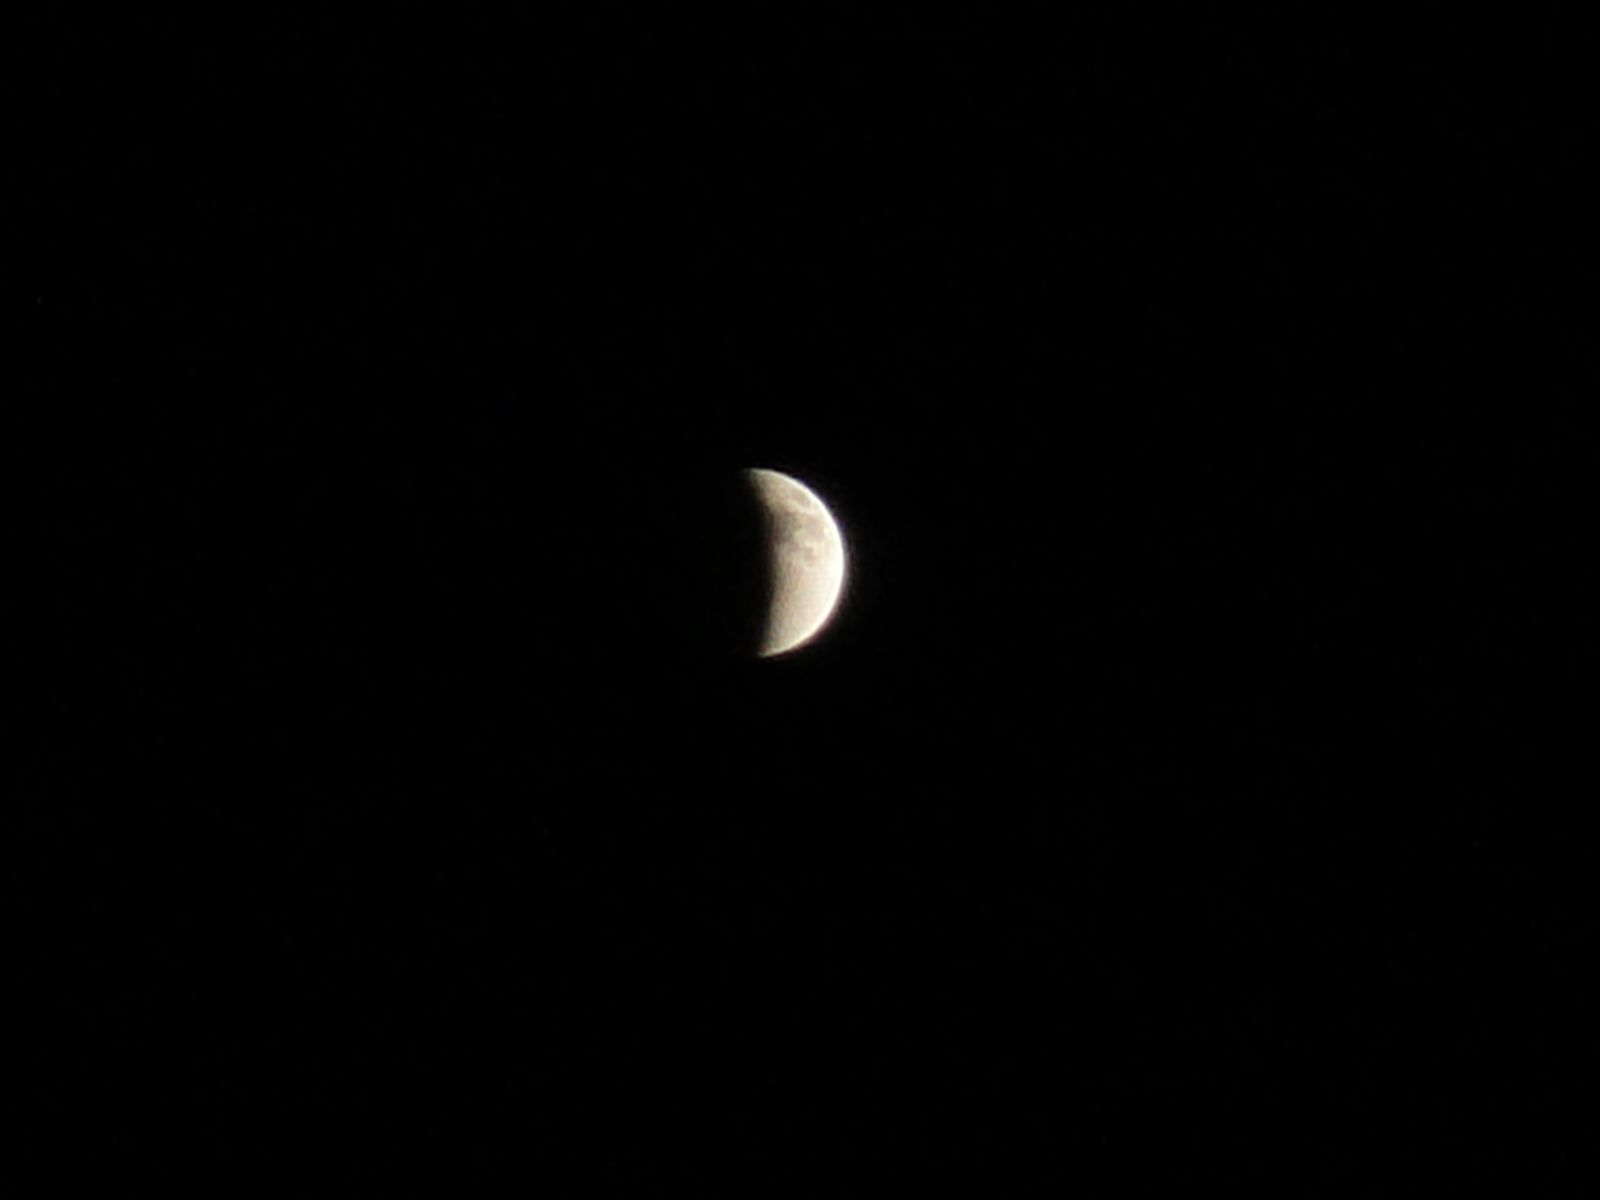 lunar_eclipse_089.jpg